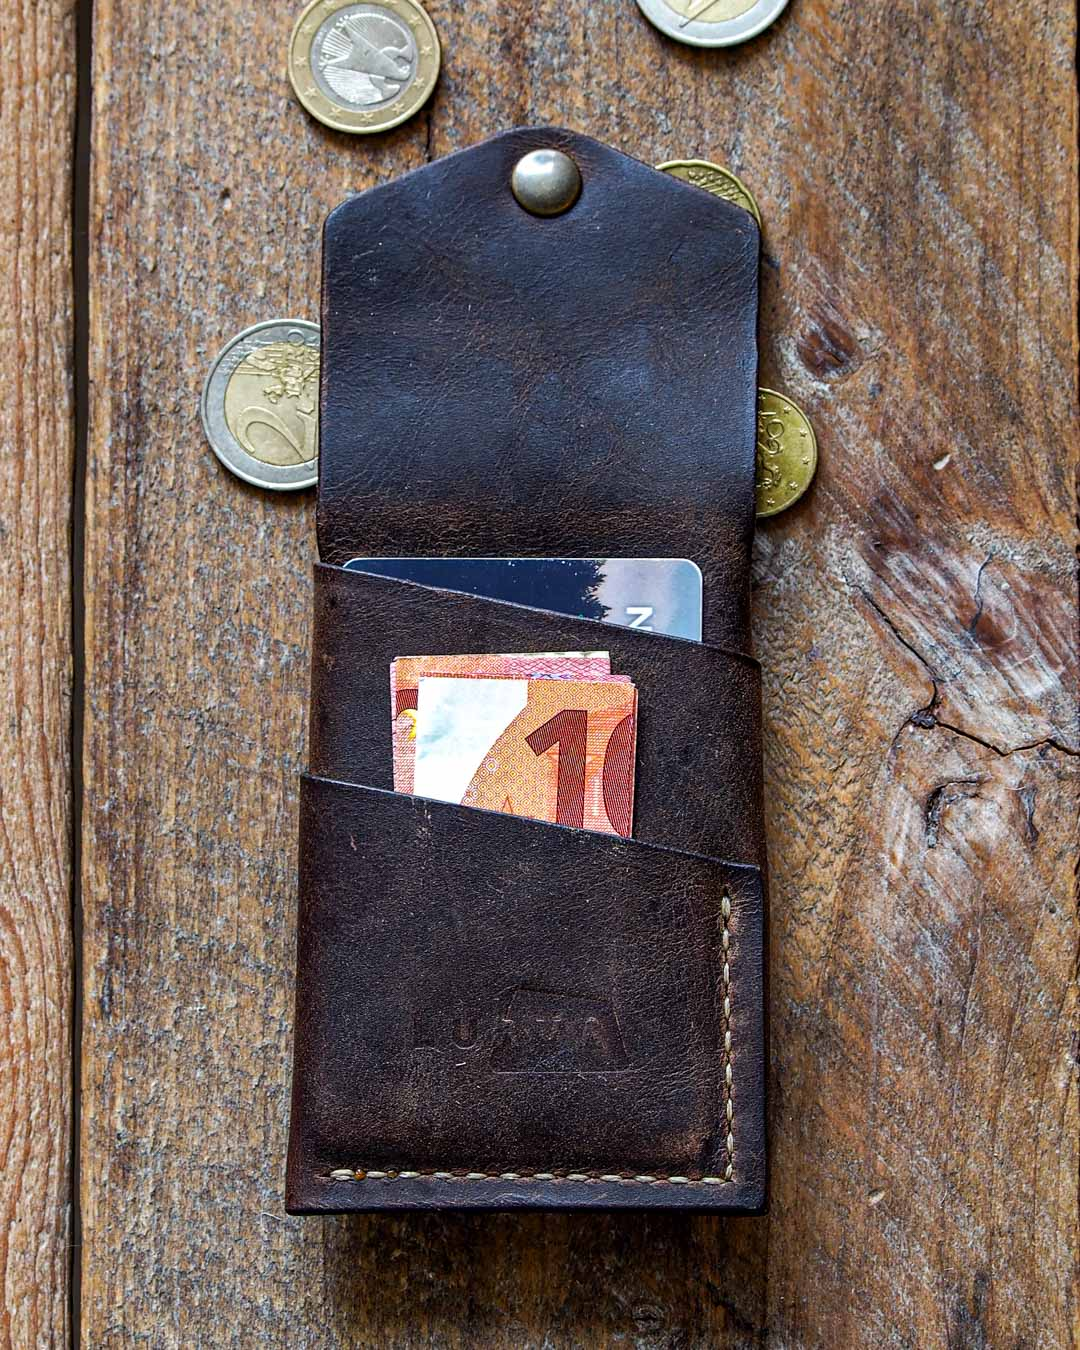 Luava handcrafted leather overfold wallet rustic cardholder card holder handmade in finland back open in use